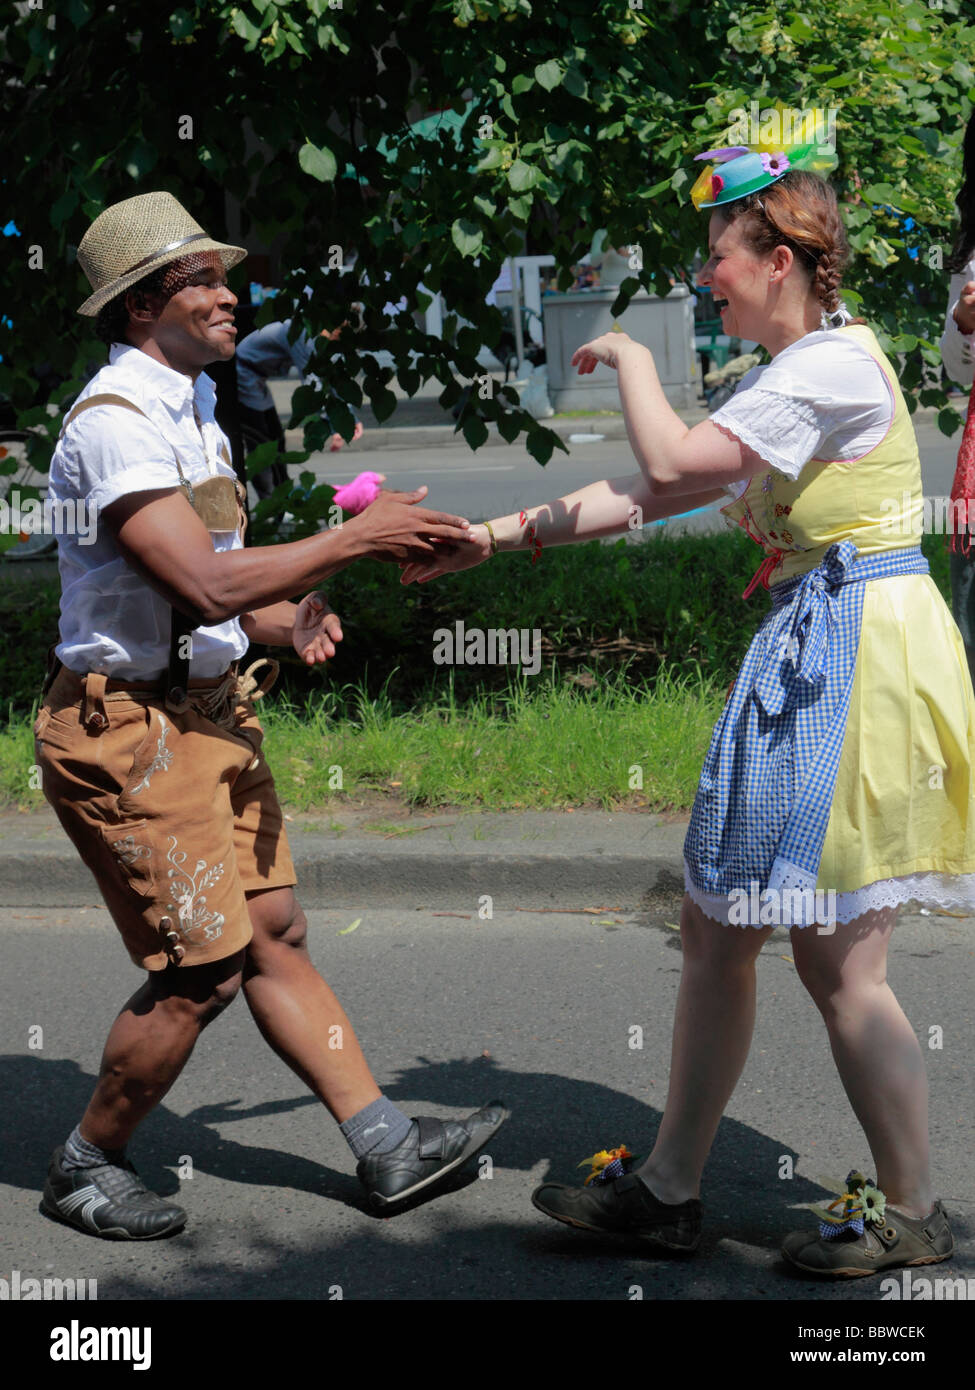 Allemagne Berlin Carnaval des Cultures merry dancers Photo Stock